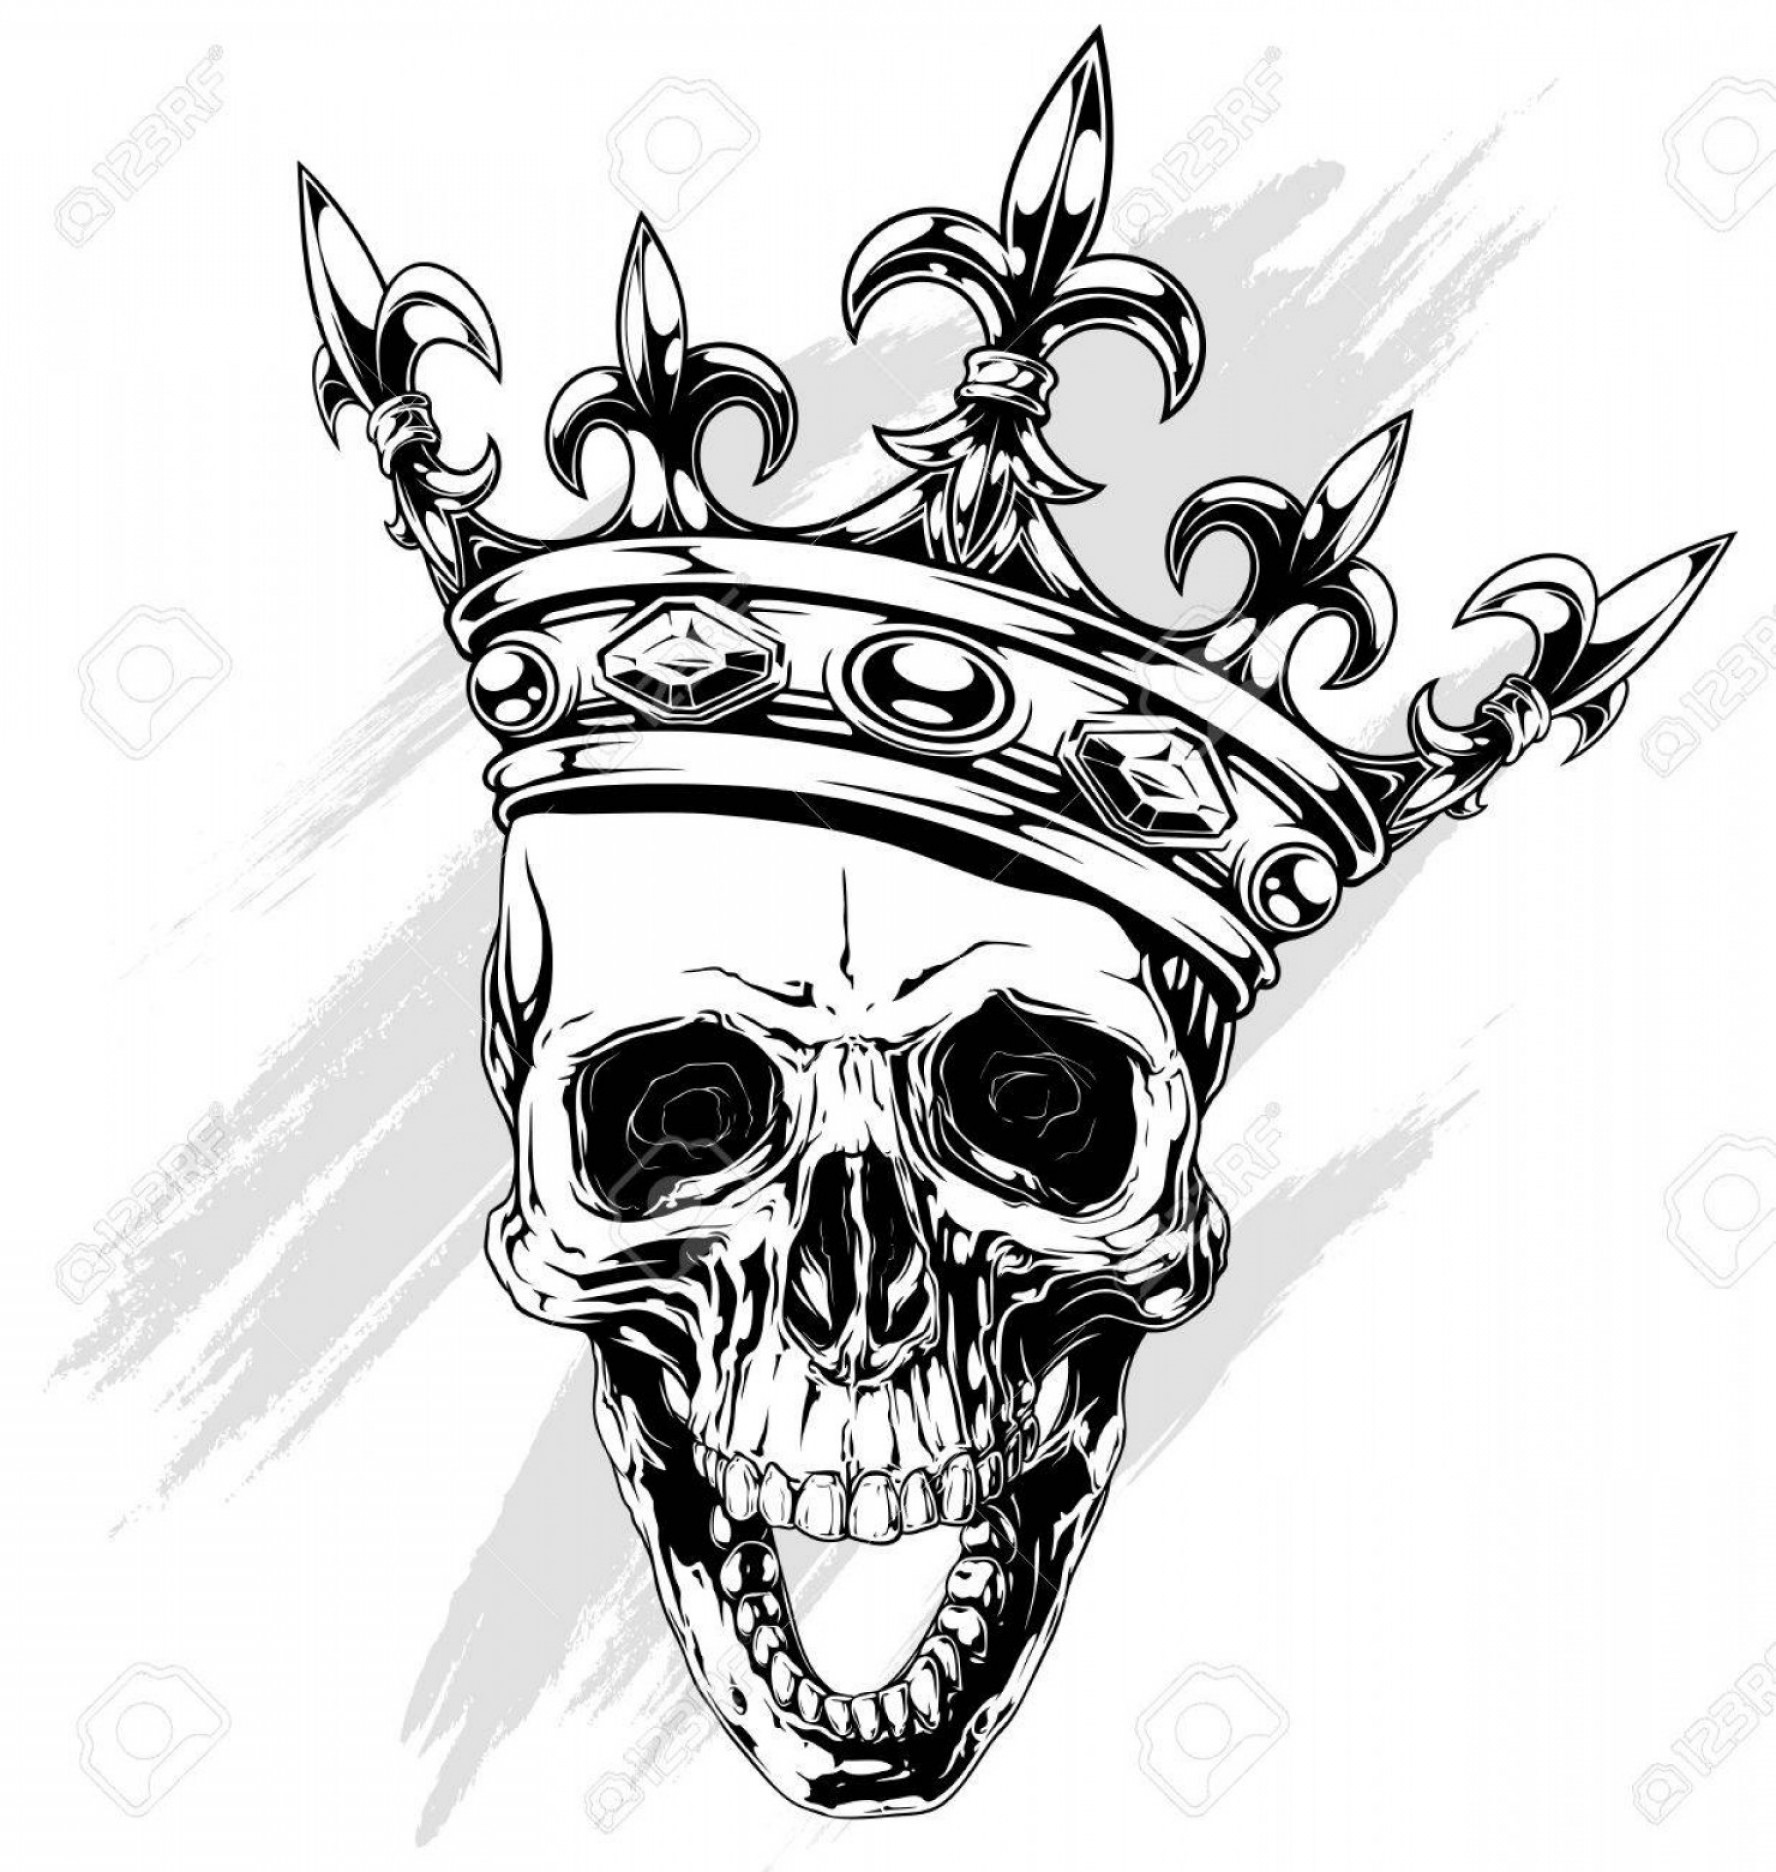 Lily Vector Art: Photostock Vector Graphic Black And White Human Skull With Royal Lily King Crown And Diamonds On White Background Vect